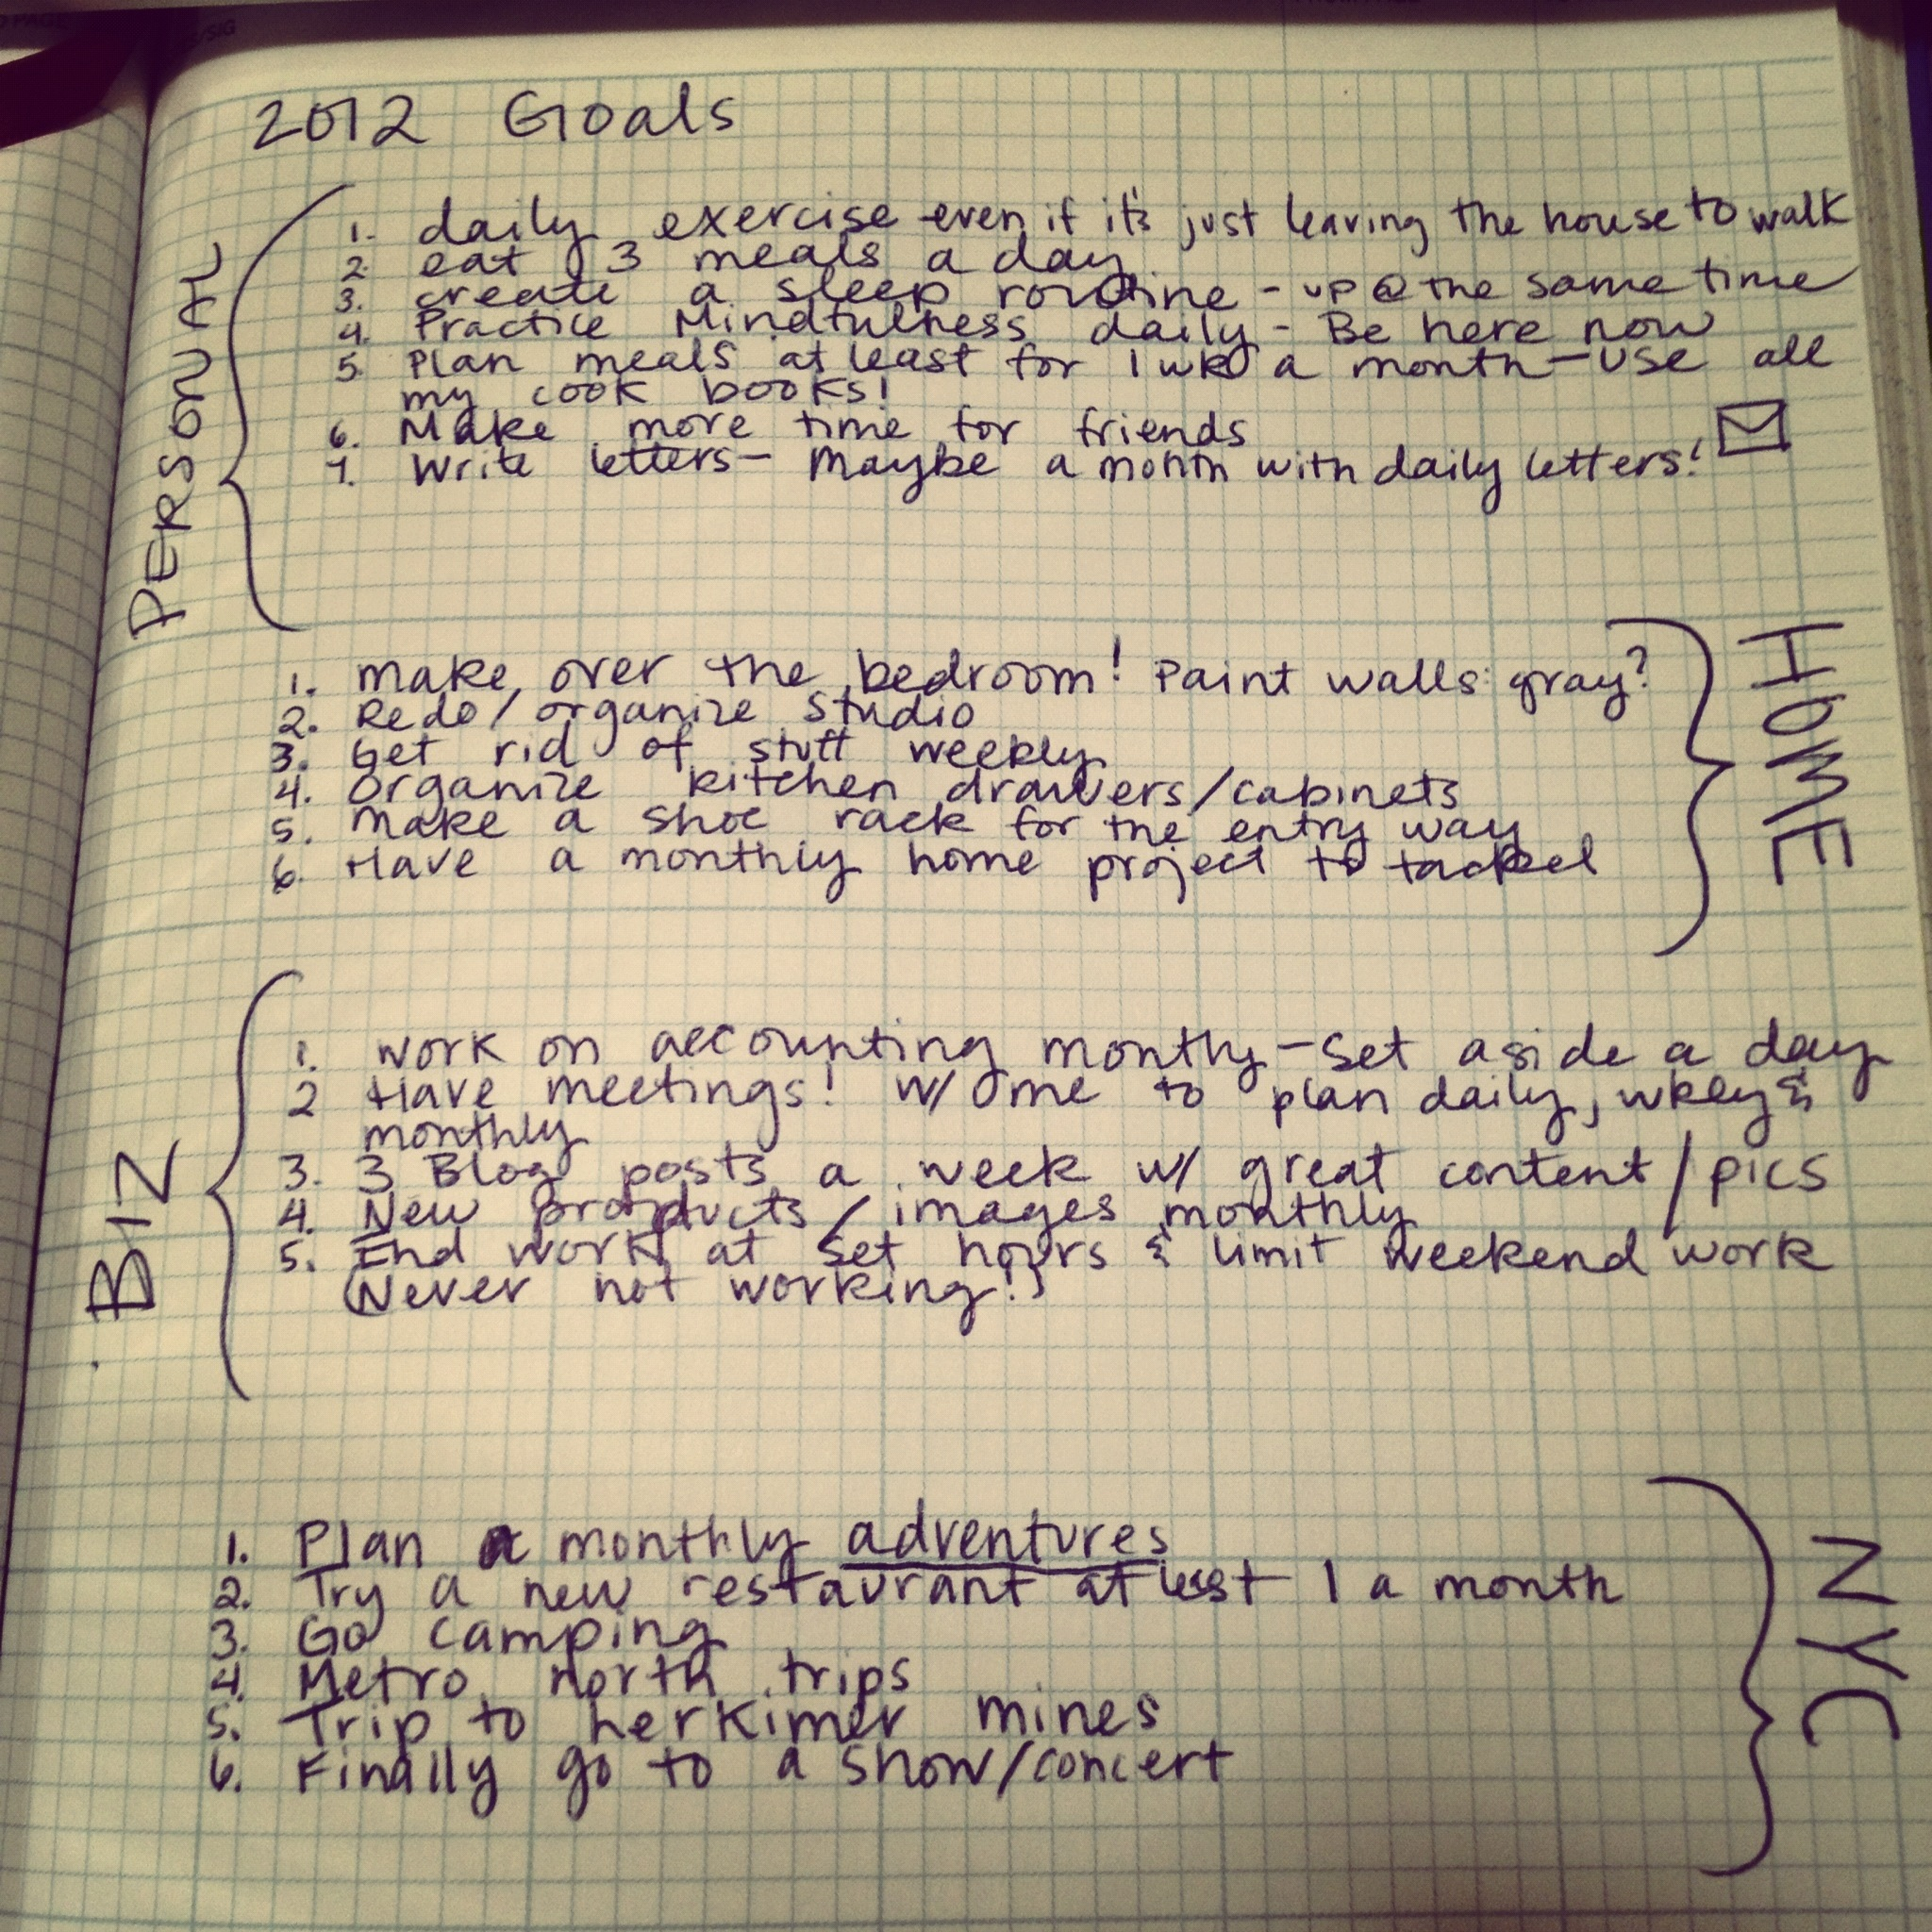 Making a goal list for 2012...